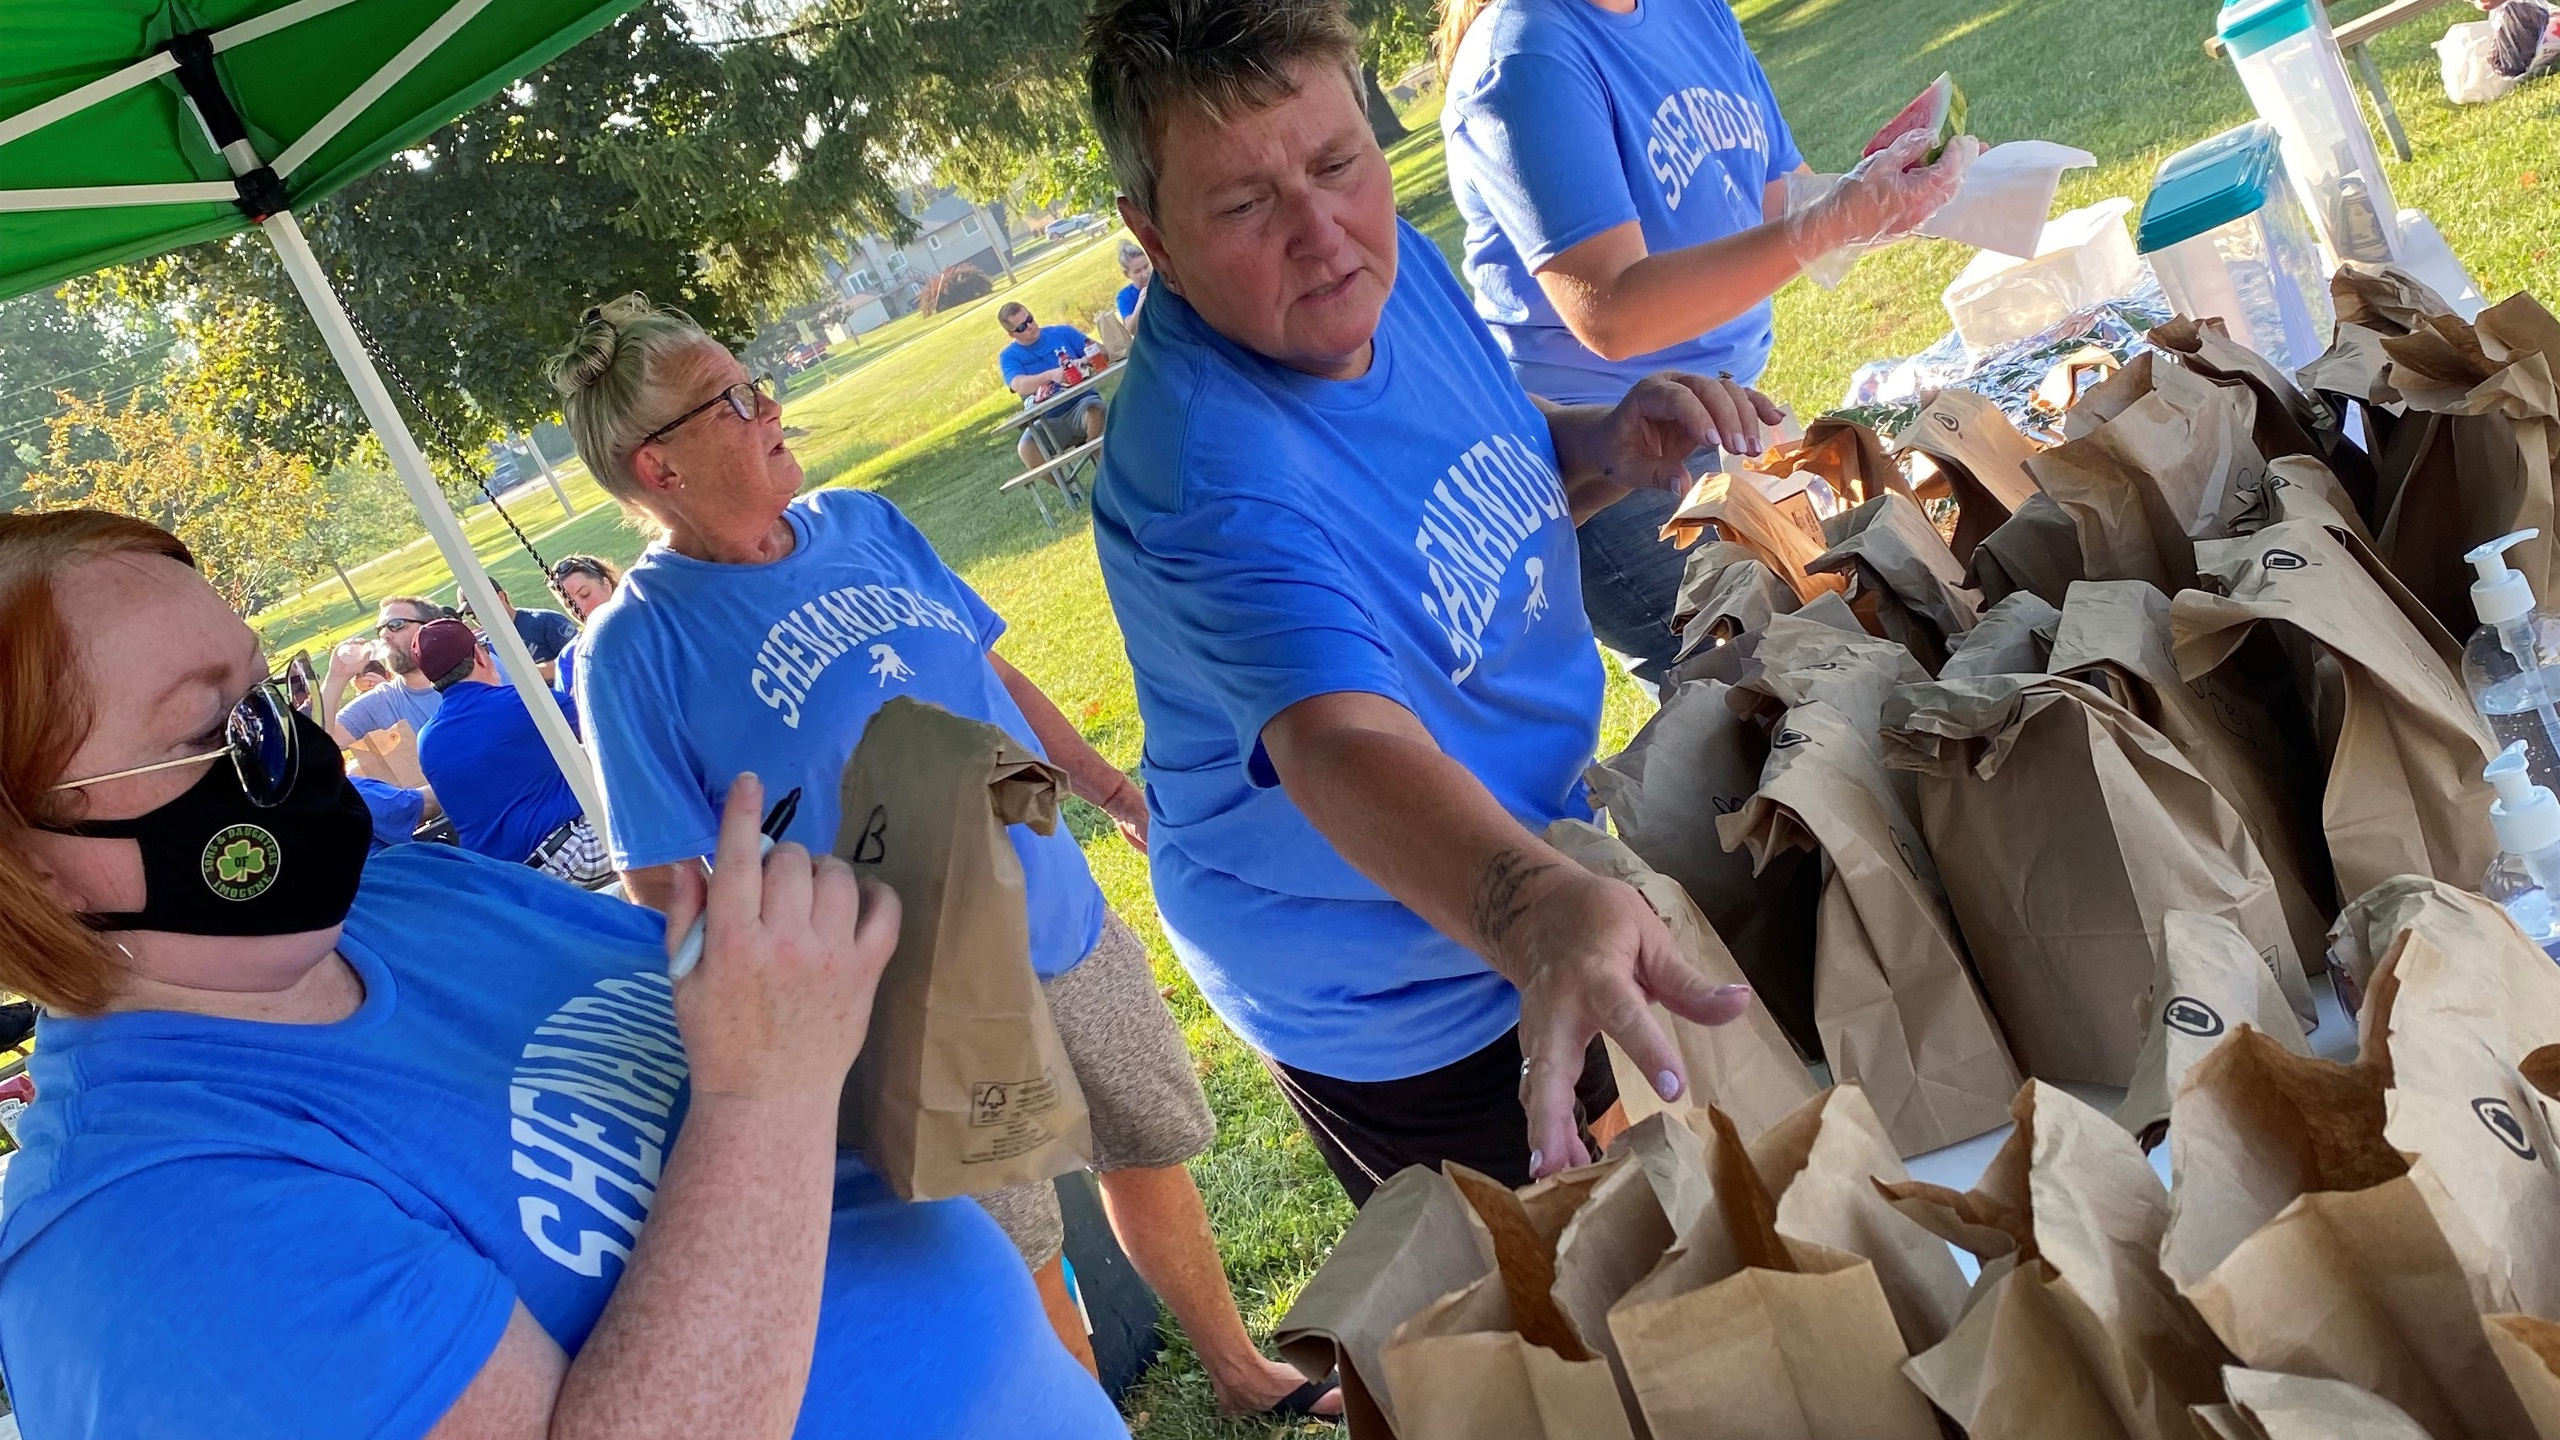 Green Plains employees preparing sack lunches at the Community Cookout